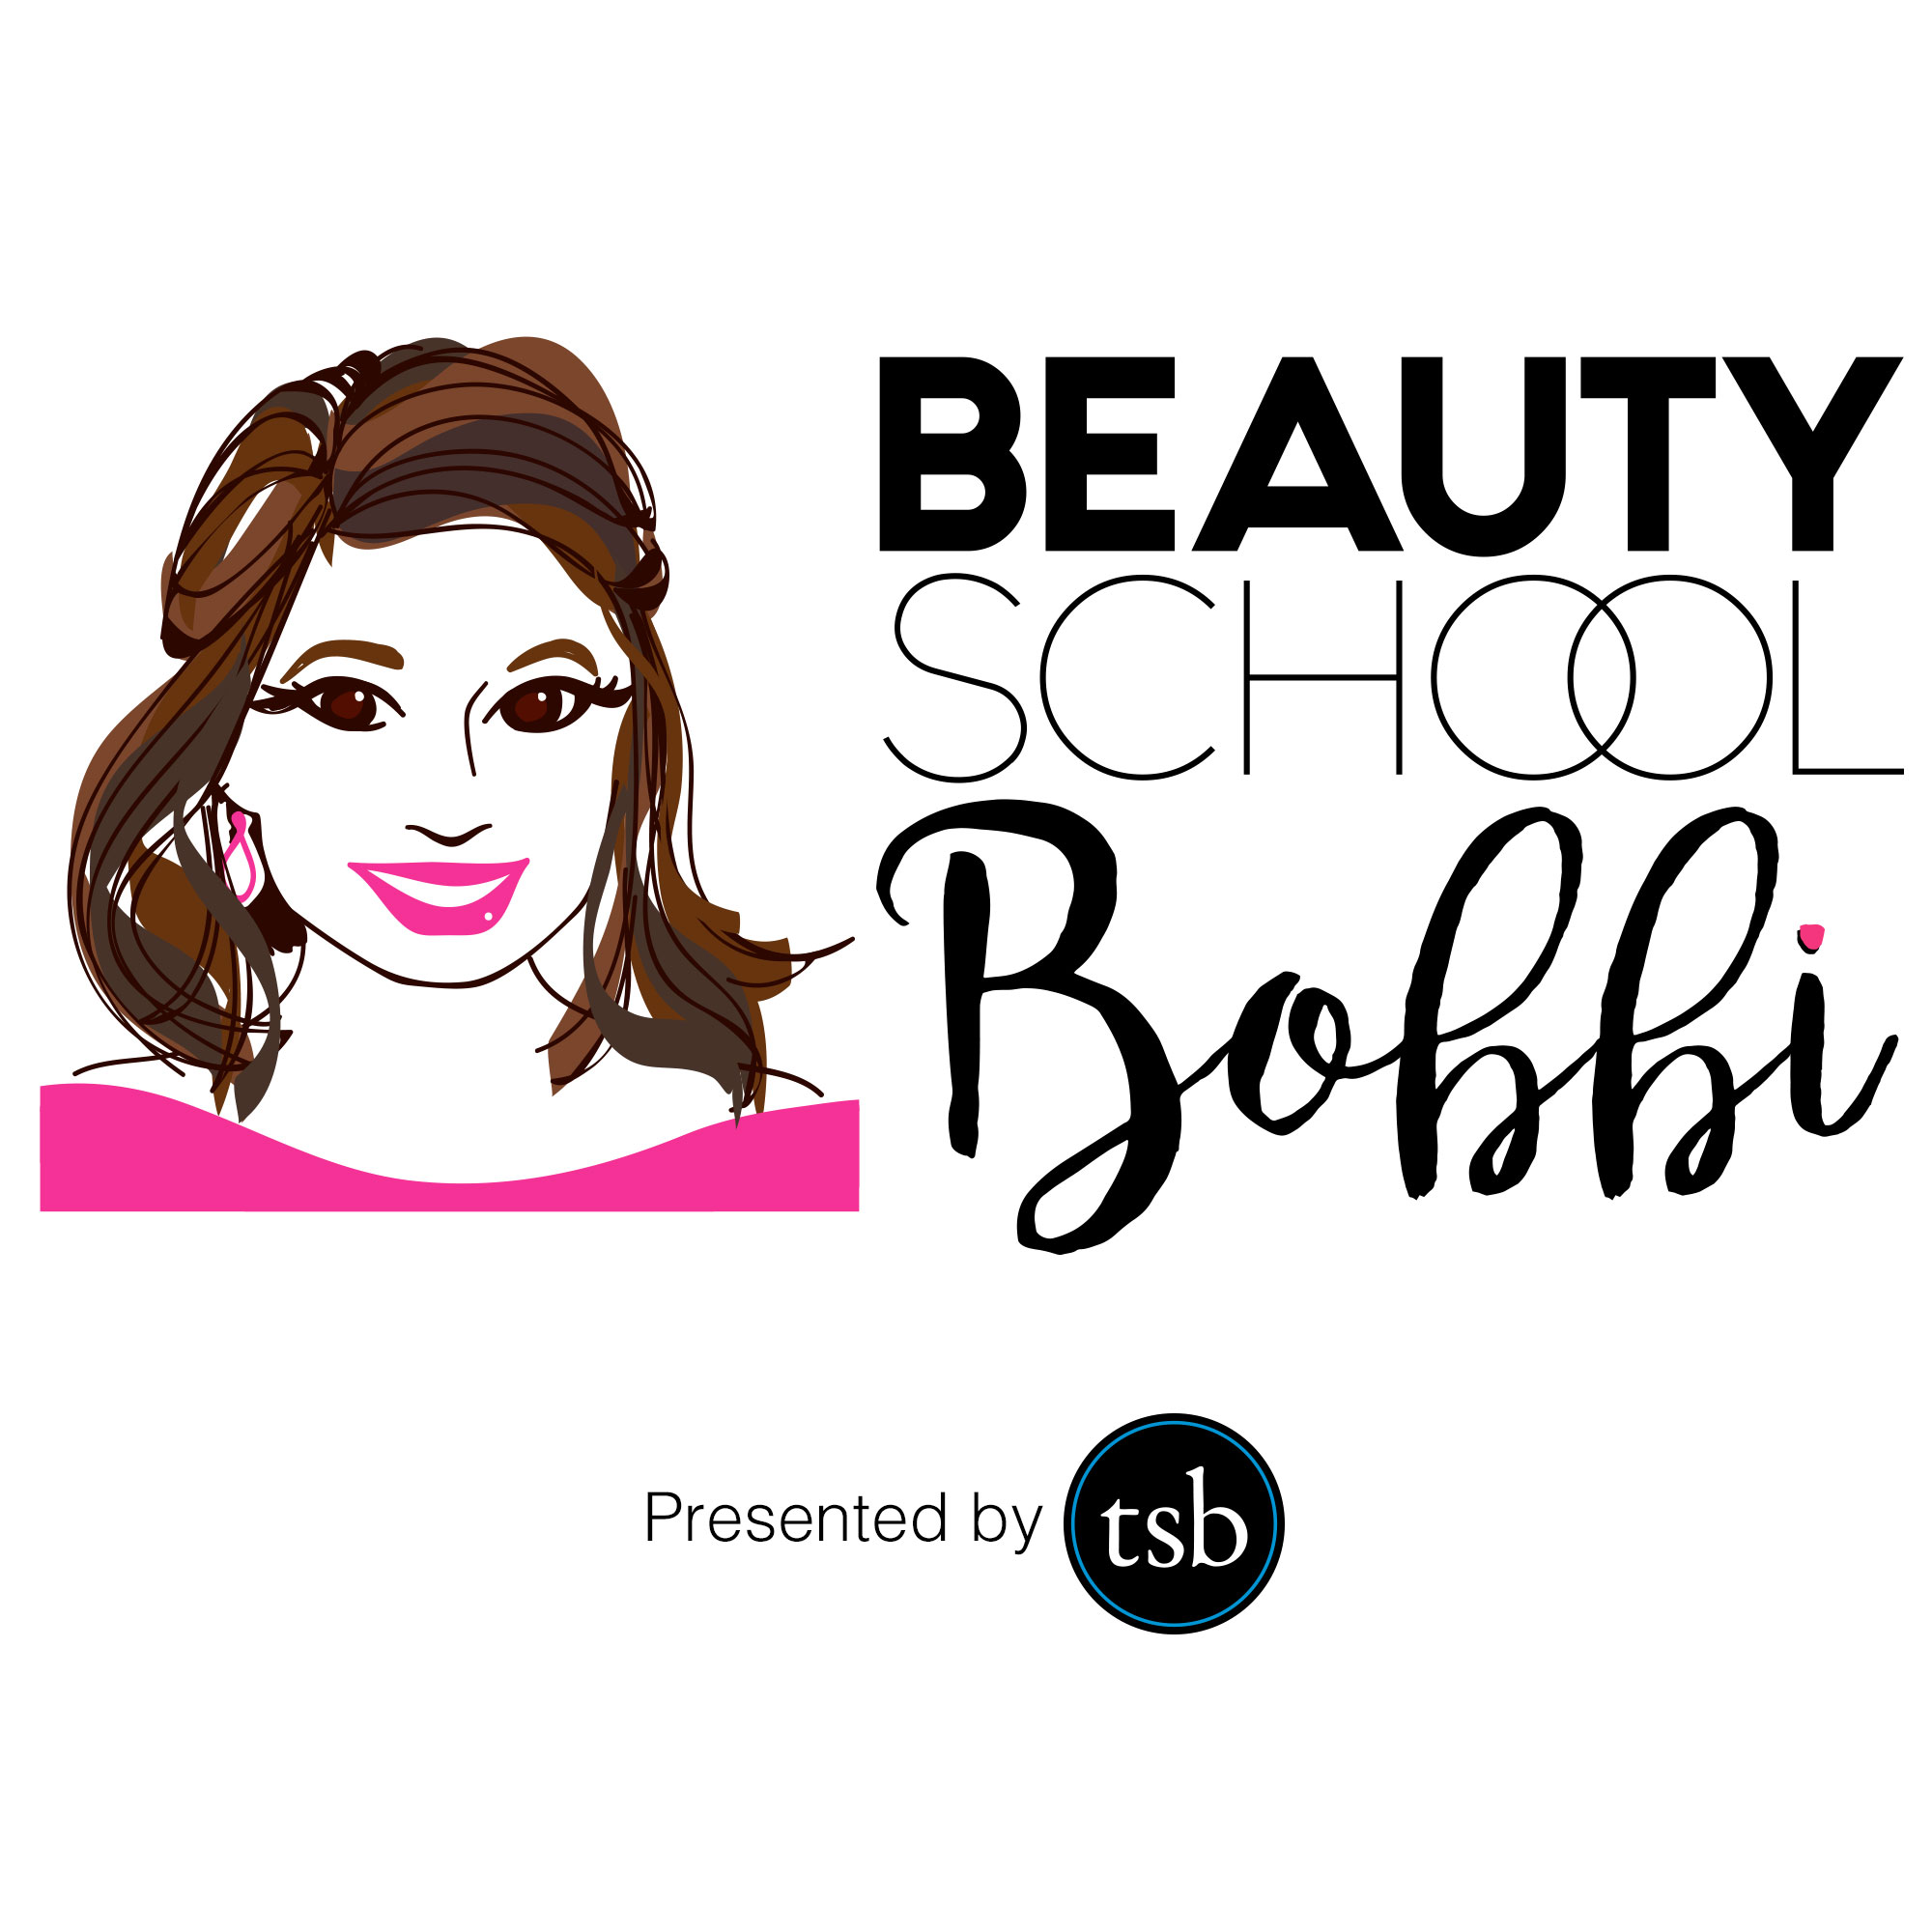 Beauty School Bobbi